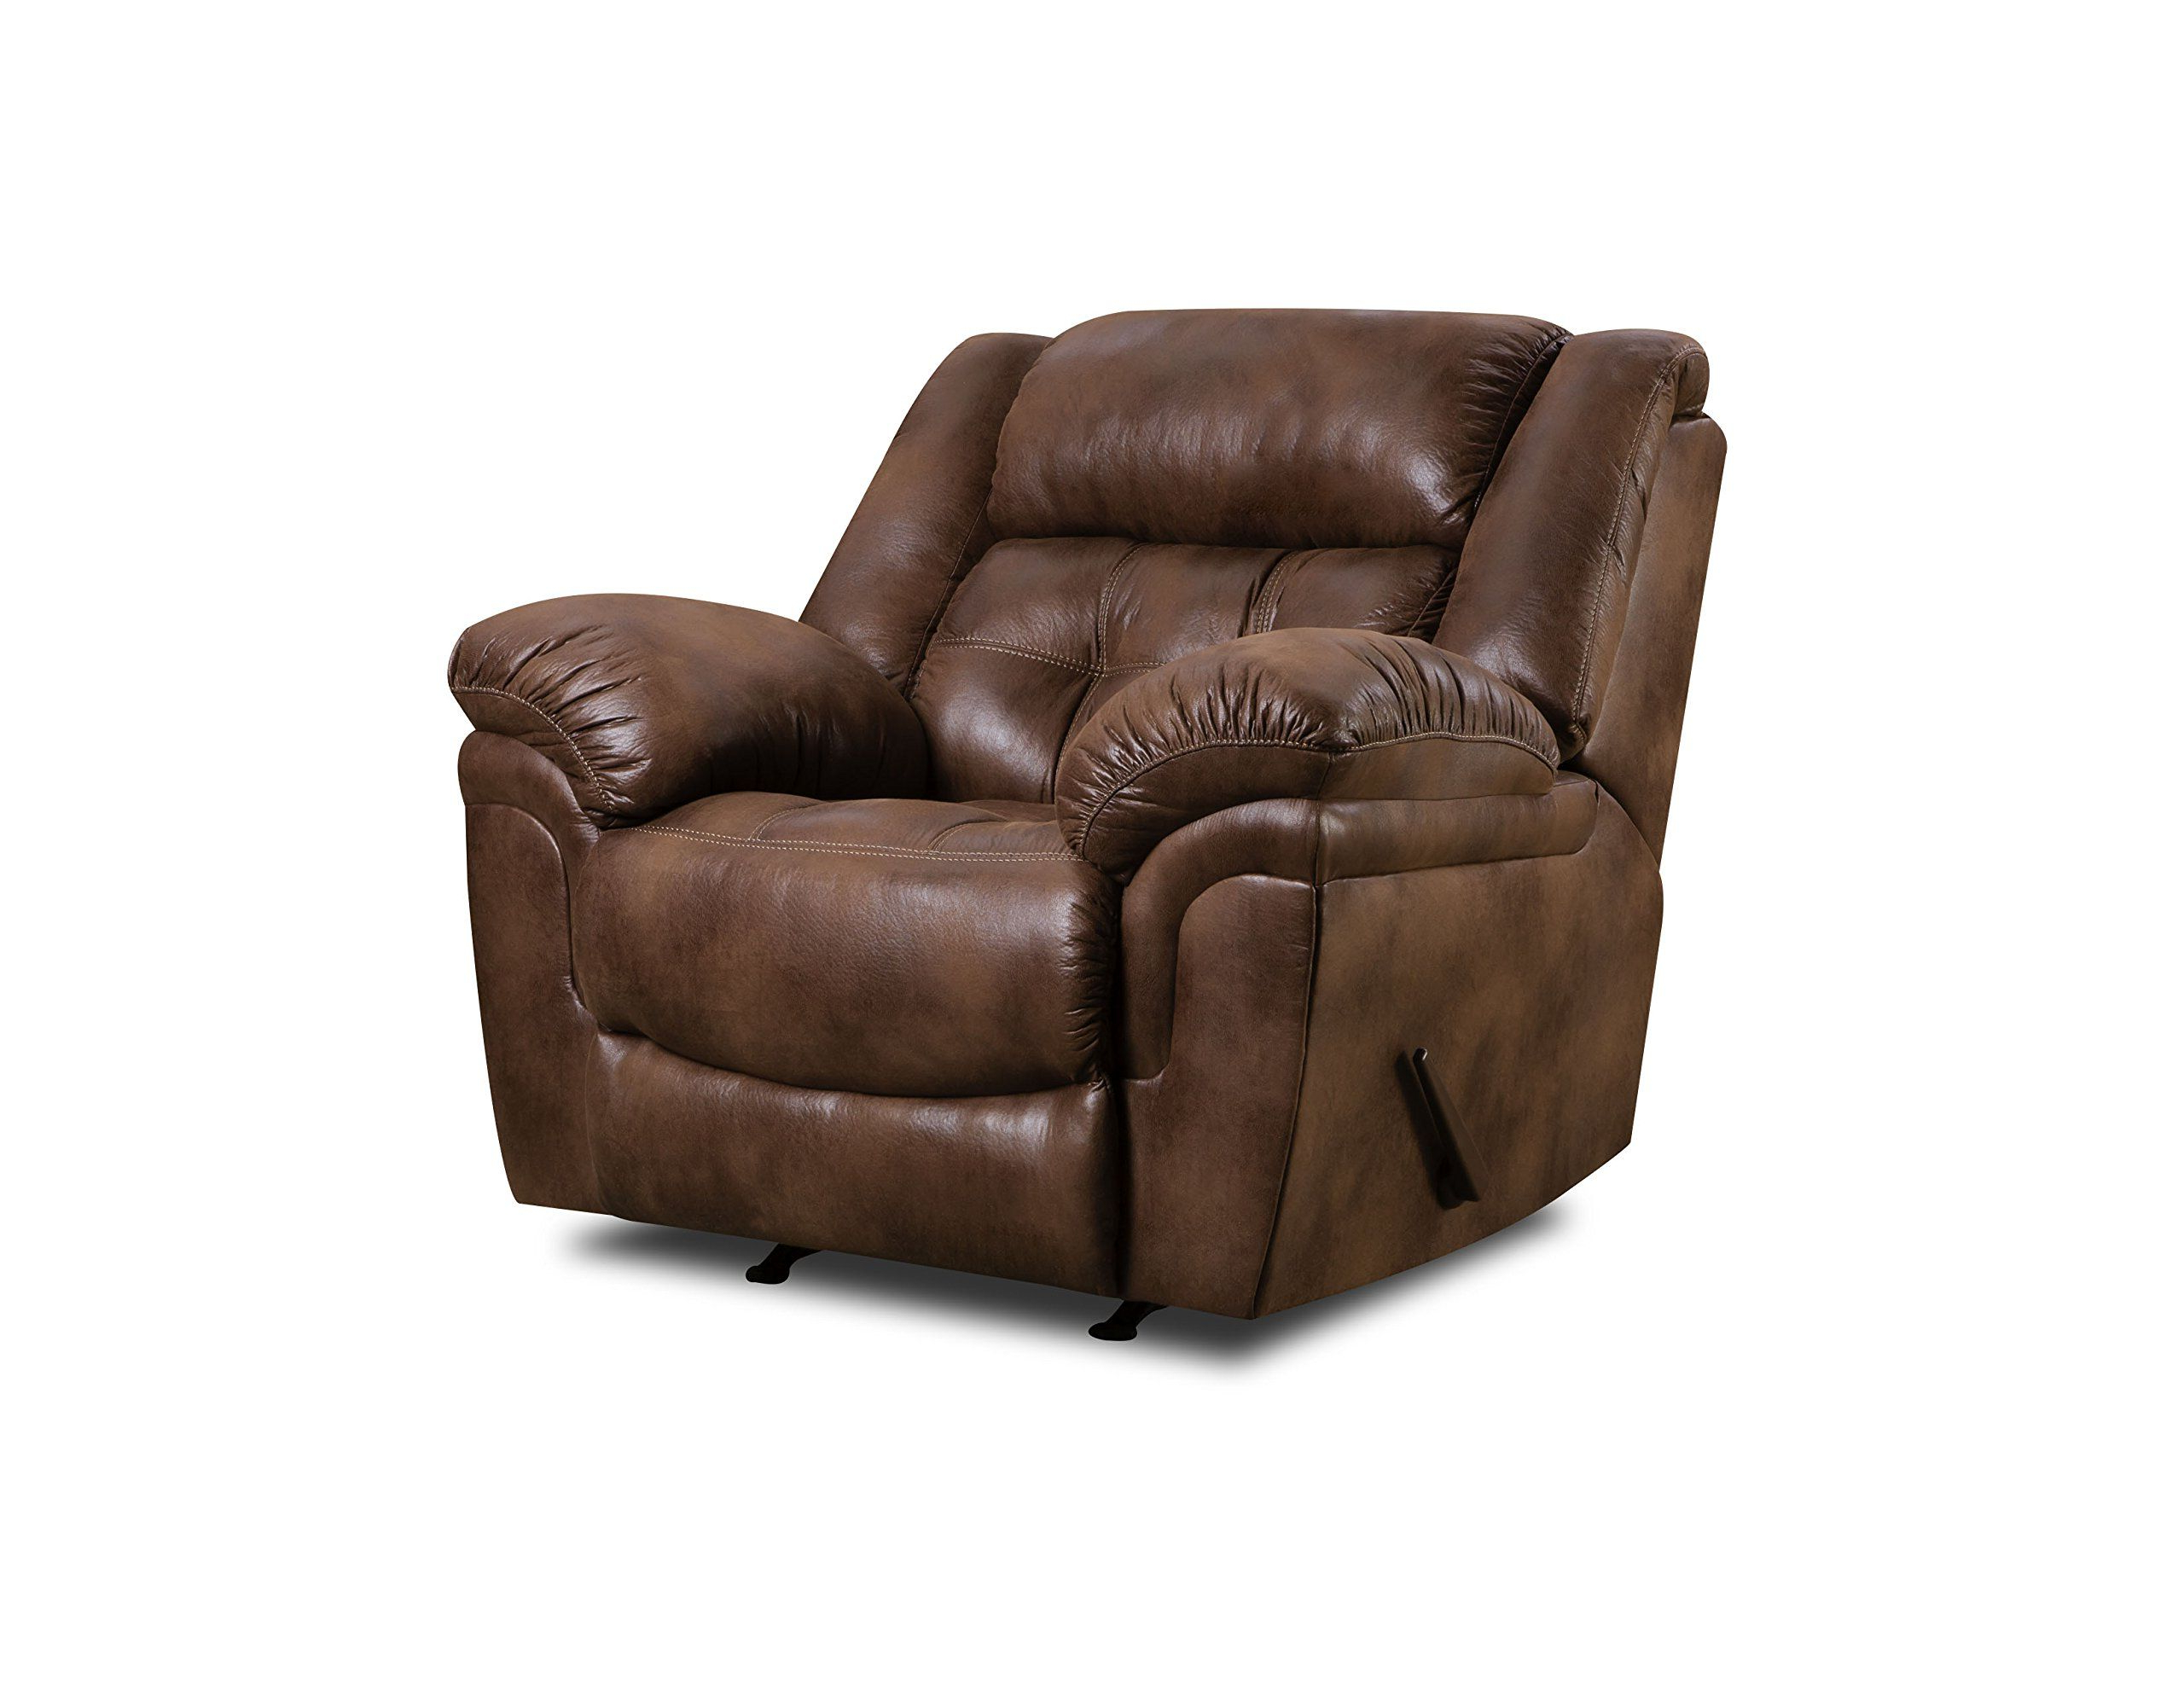 Simmons Upholstery Wisconsin Beautyrest Rocker Recliner Wisconsin Inside Latest Hercules Chocolate Swivel Glider Recliners (View 9 of 20)